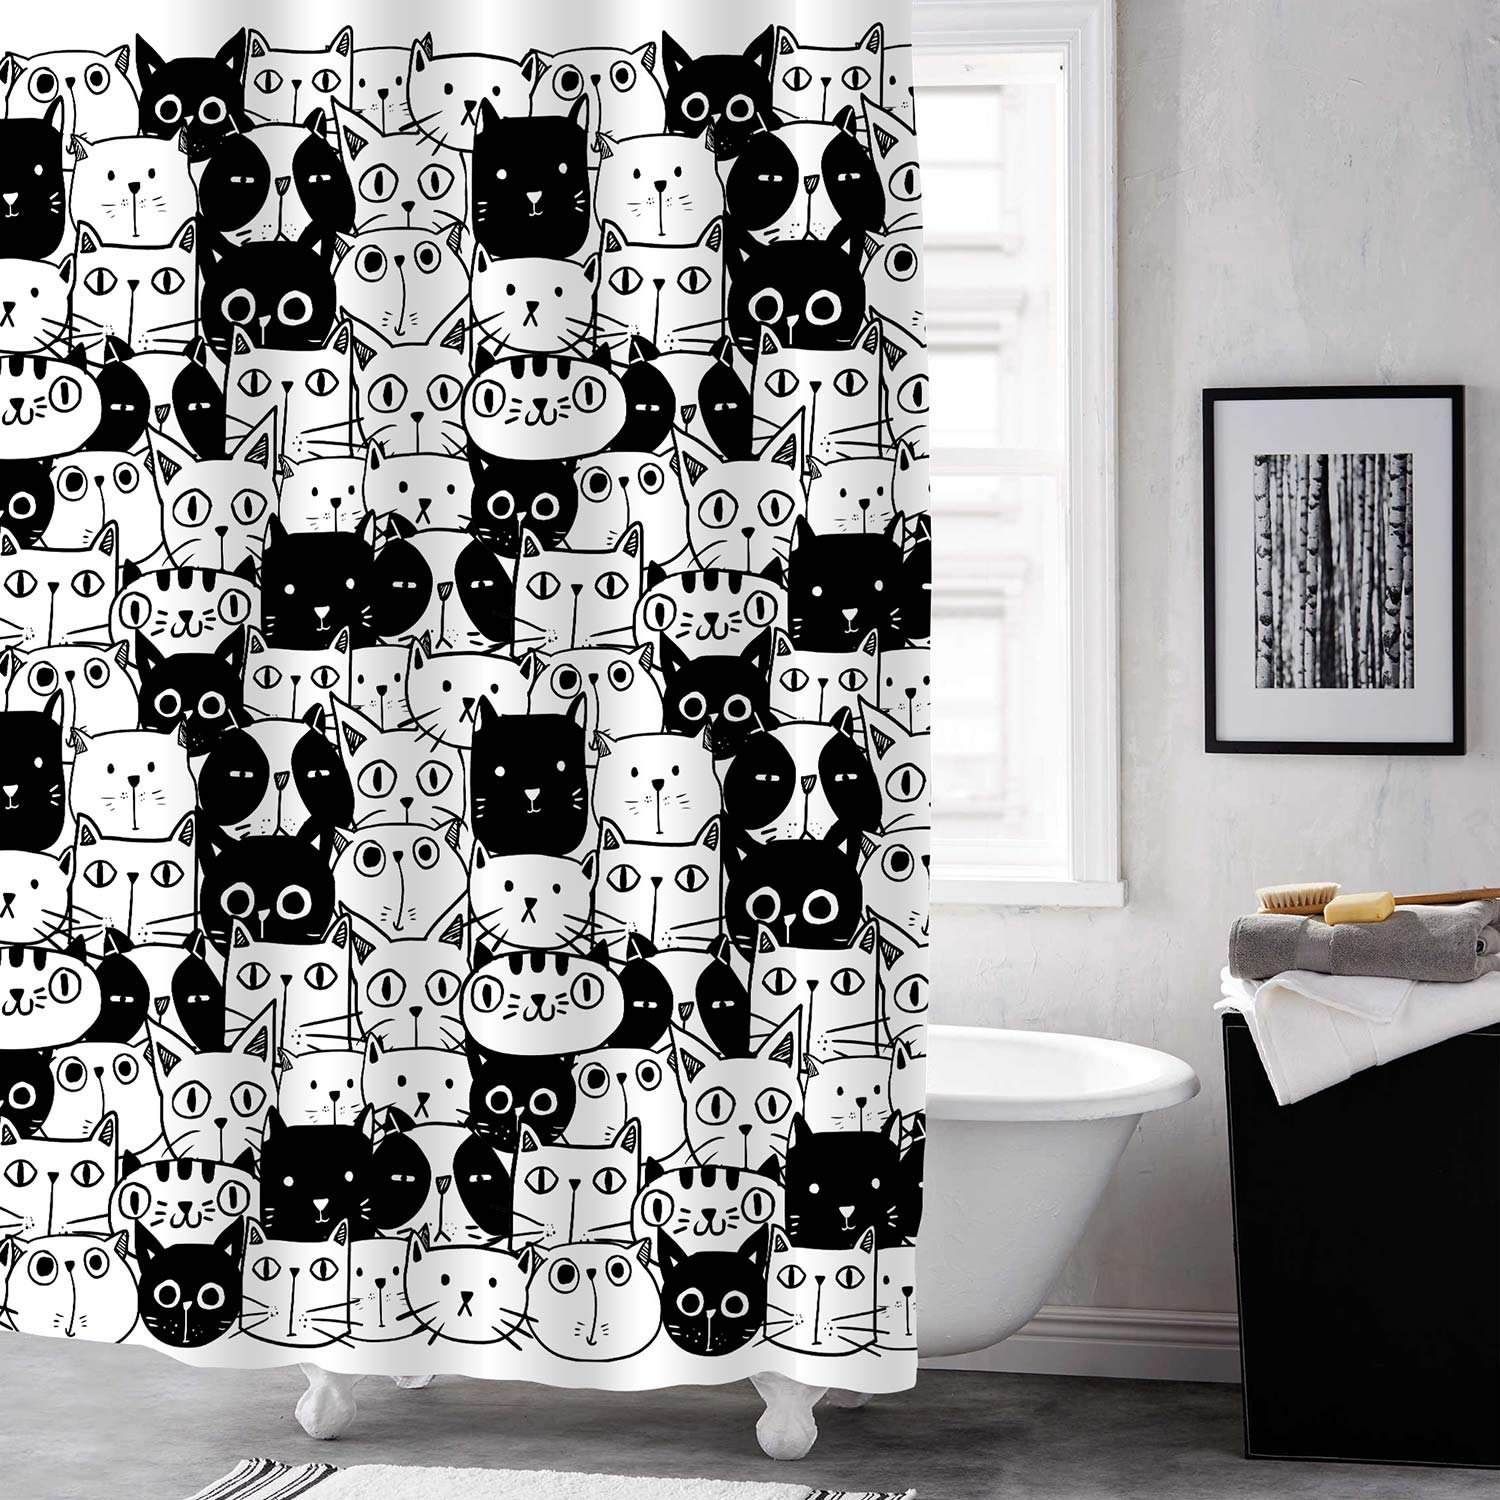 Mitovilla Cartoon Cat Shower Curtain Set With Hooks Cute Kitten Bathroom Art Decor For Baby Kids Animal And Pet Lover Gifts Black And White 72 W X 72 L For Bathroom Shower